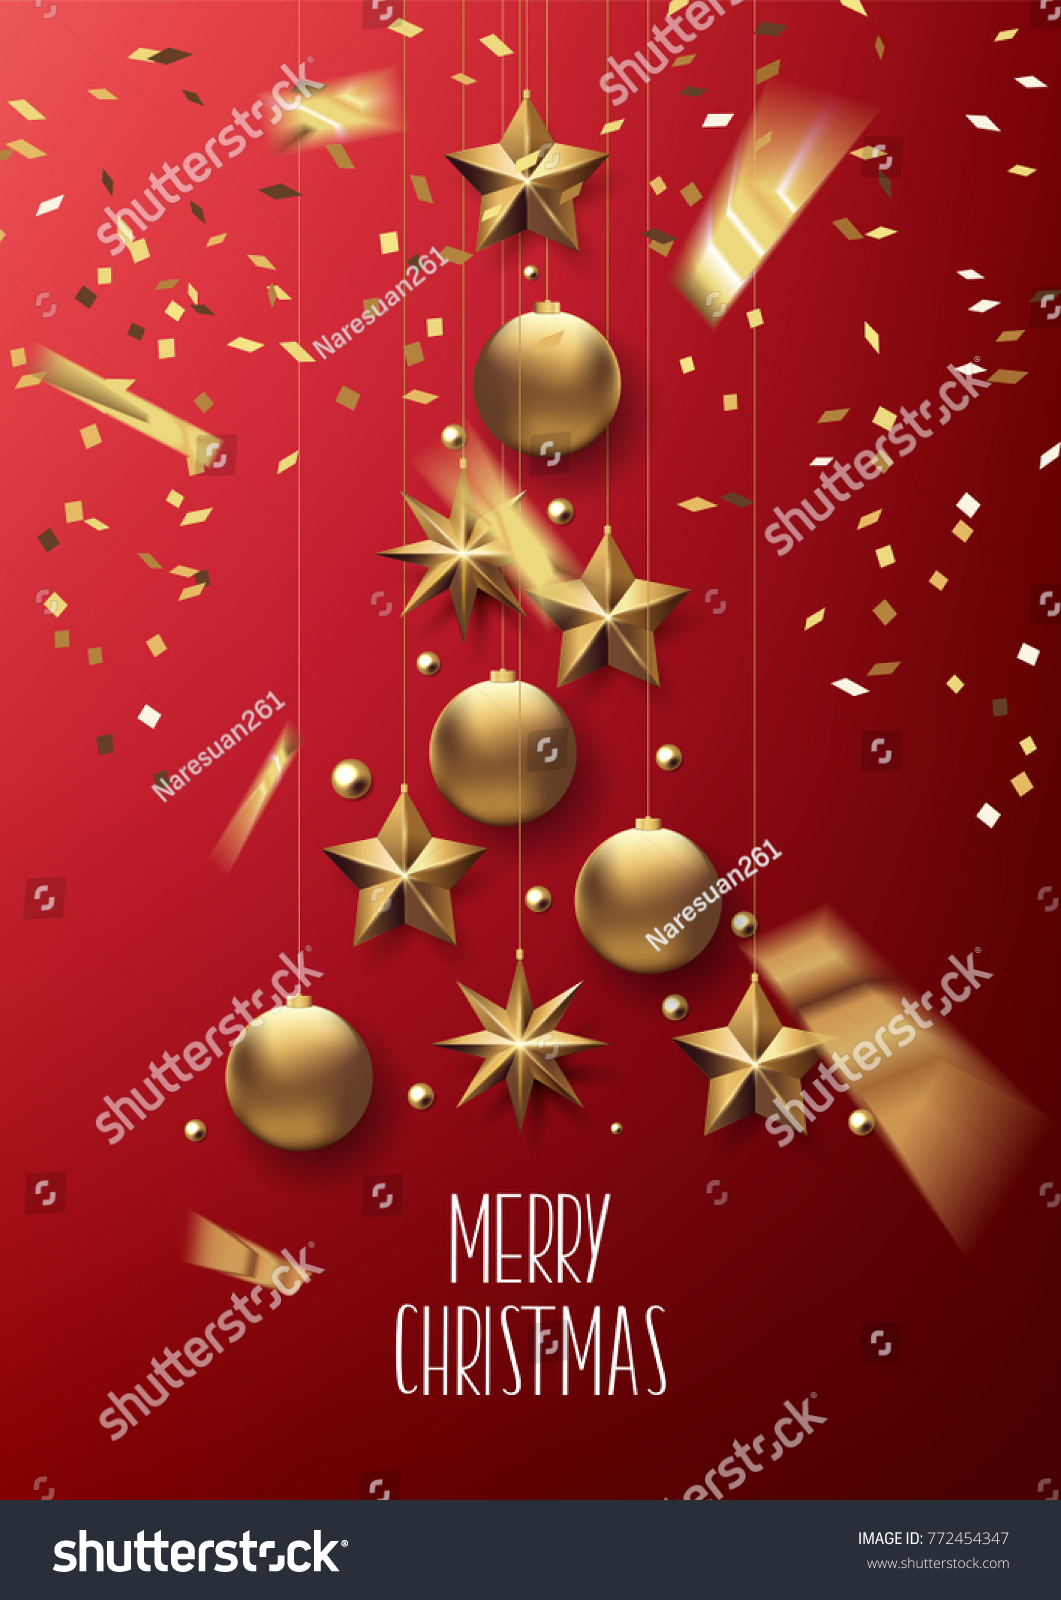 Merry Christmas Happy New Year 2018 Stock Vector Royalty Free